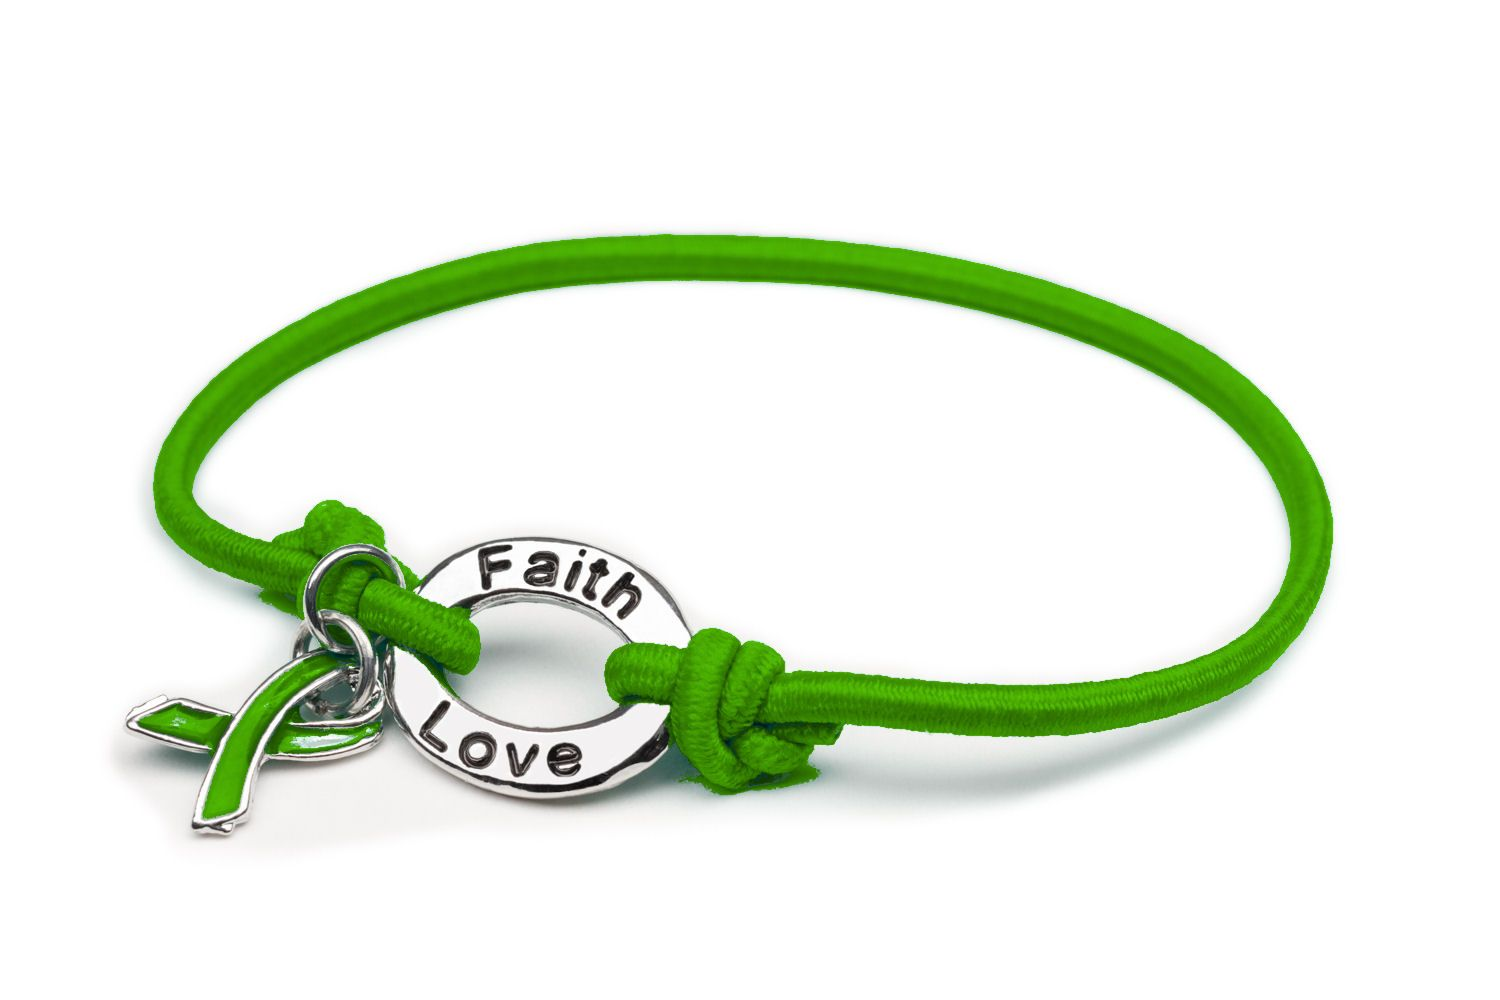 bracelet pin mental health depression green bipolar awareness